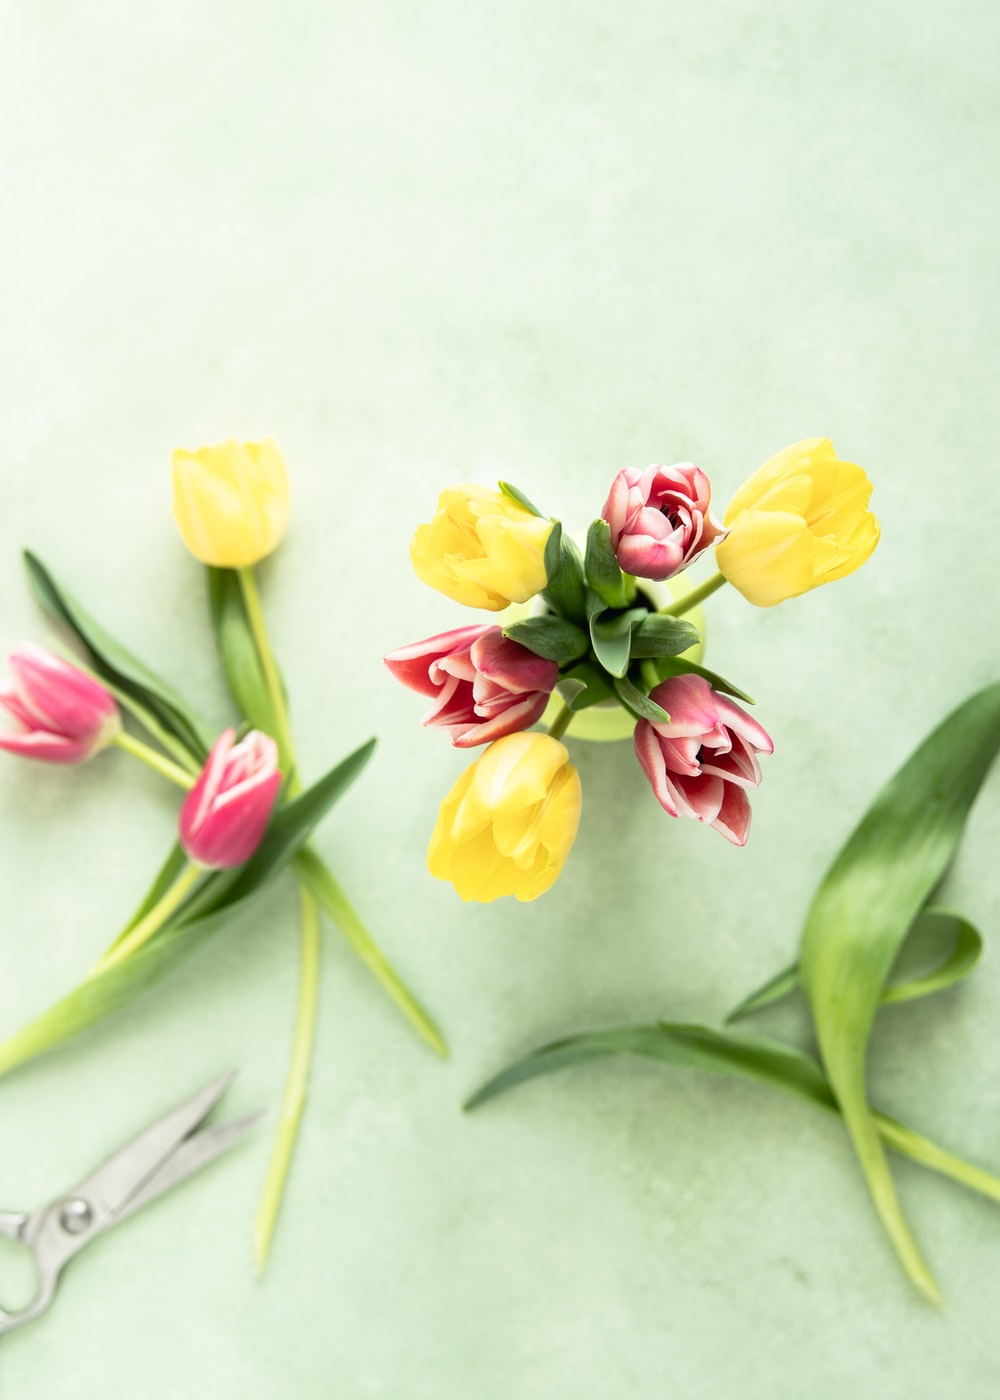 yellow and pink tulip flowers